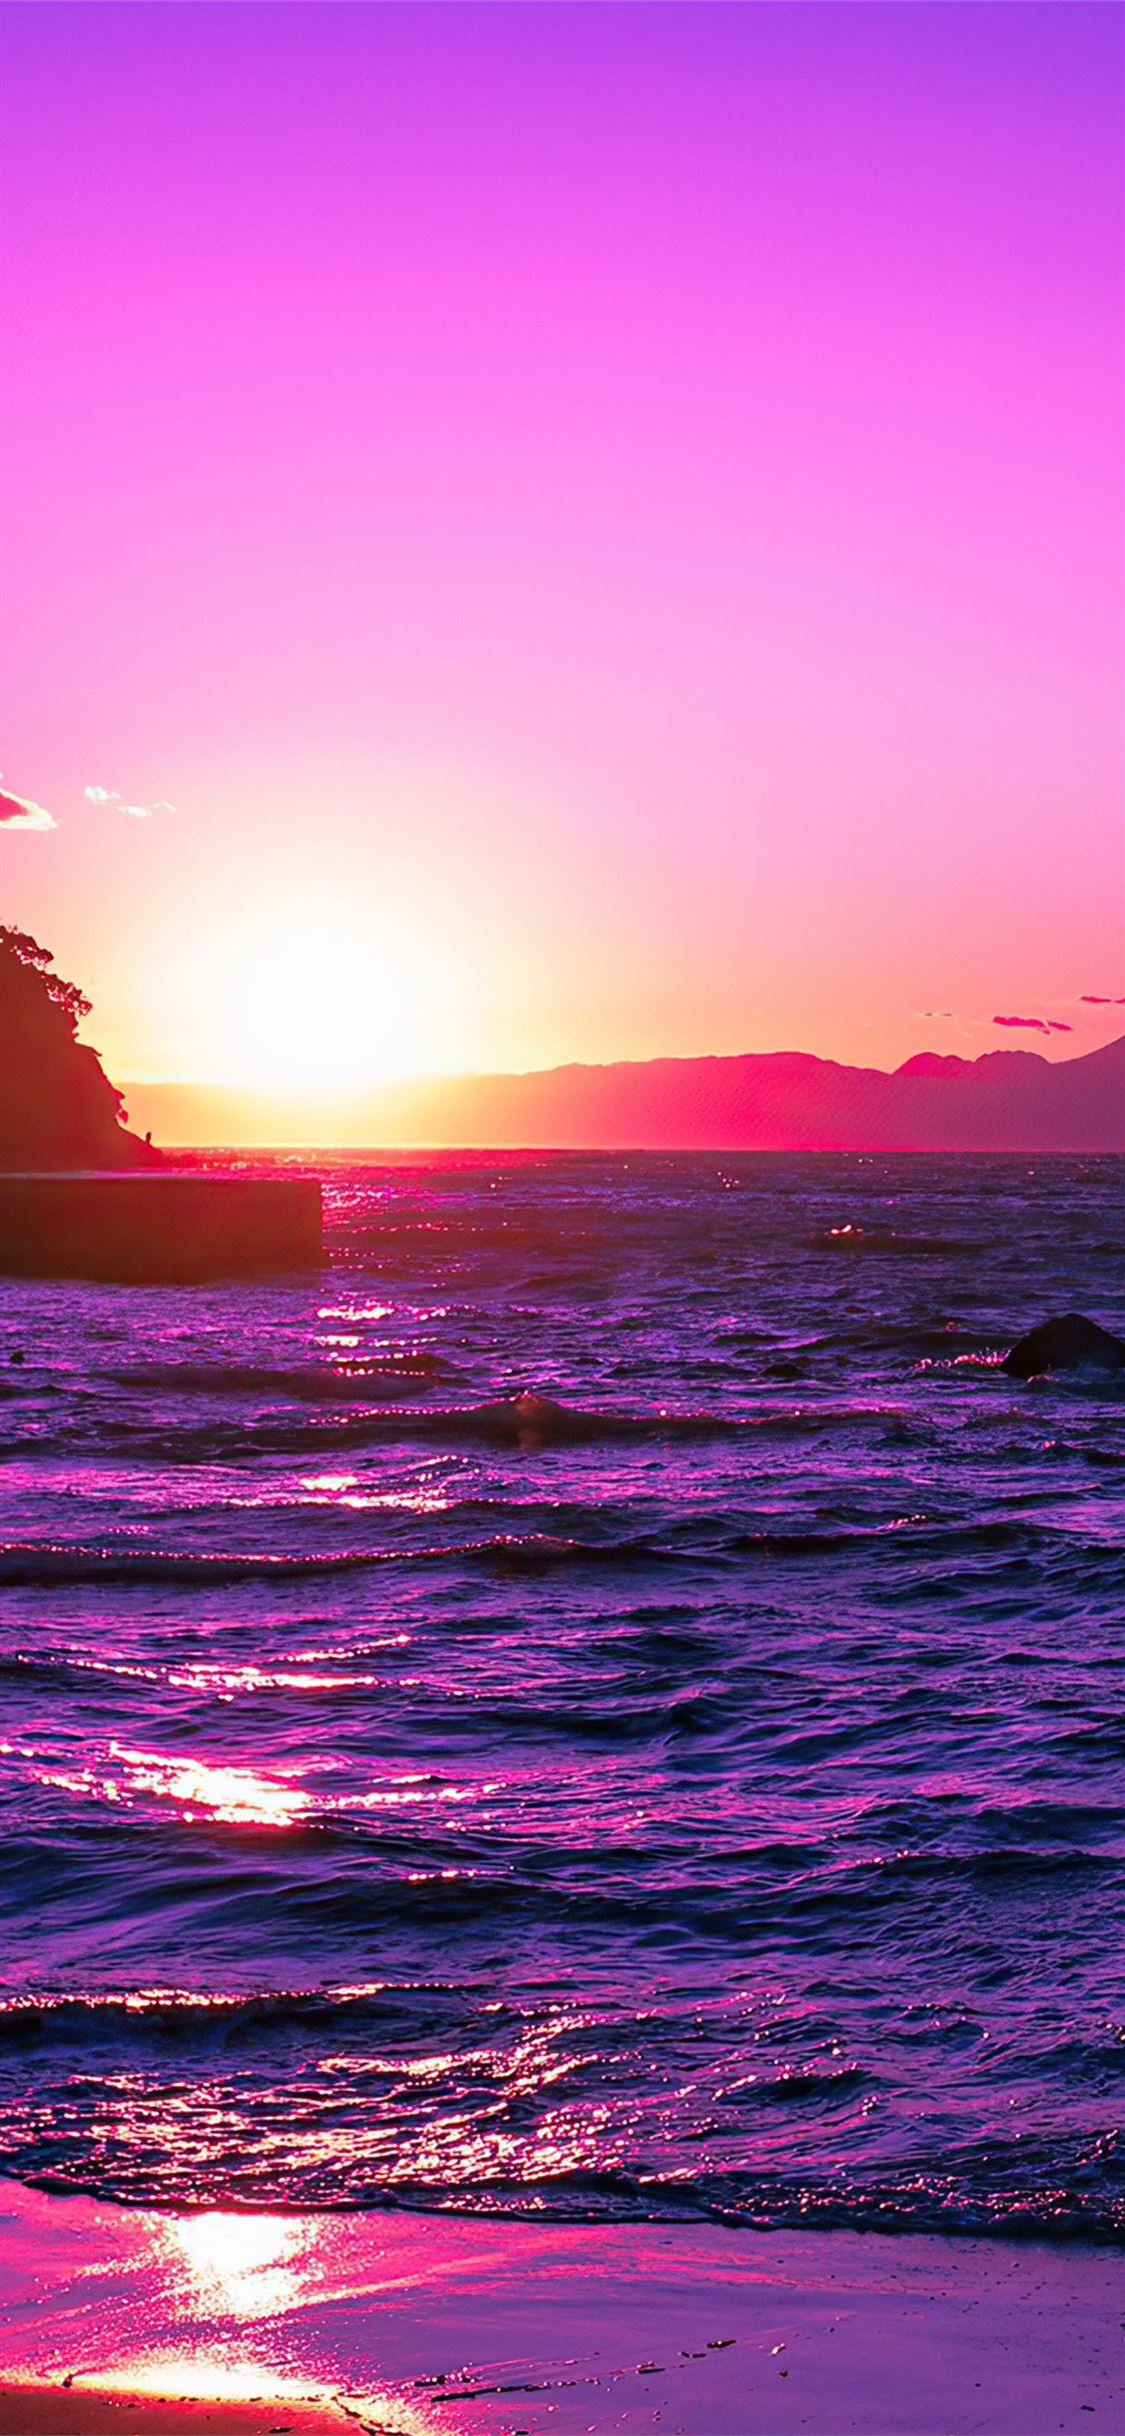 Beautiful Evening Purple Sunset 4k Iphone 11 Wallpapers Free Download See more ideas about purple wallpaper, purple aesthetic, pastel aesthetic. beautiful evening purple sunset 4k